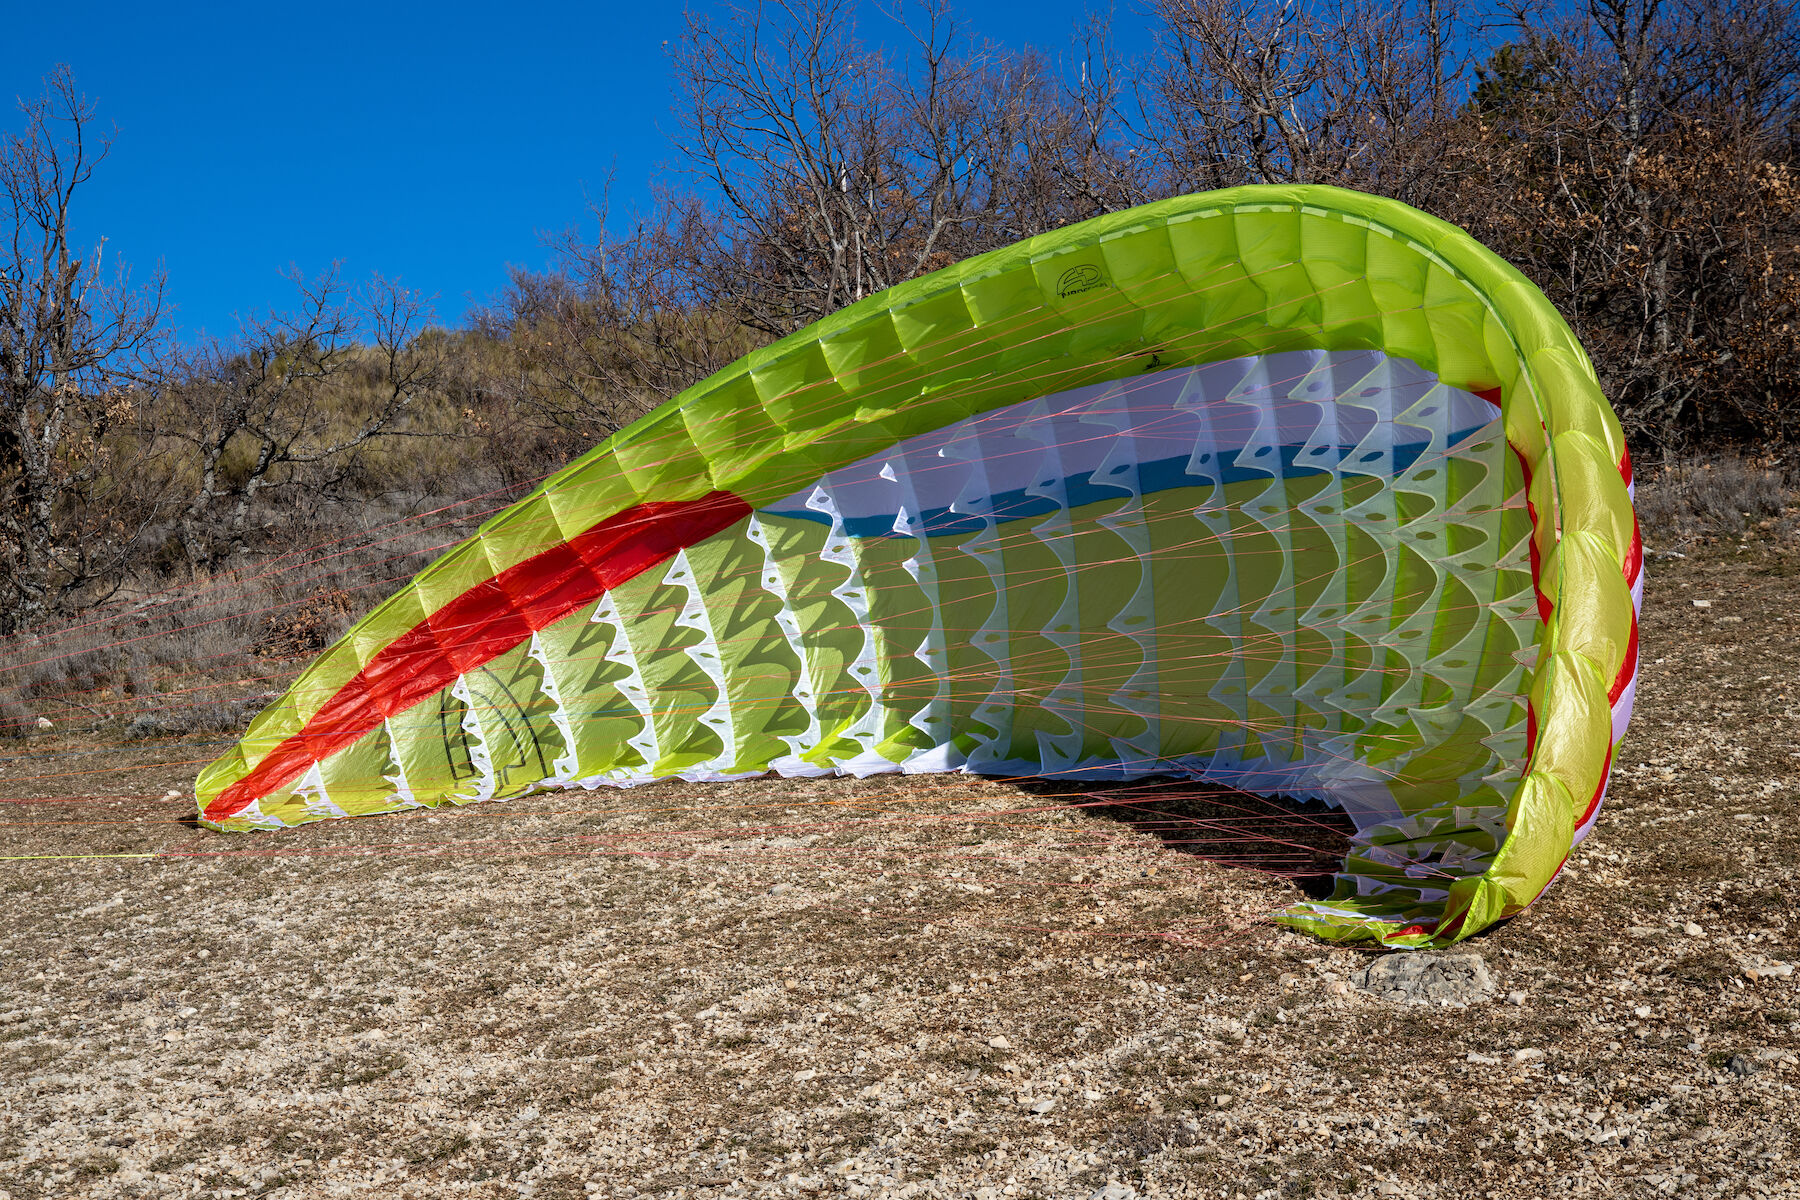 The New UFO Ultralight Flying Object